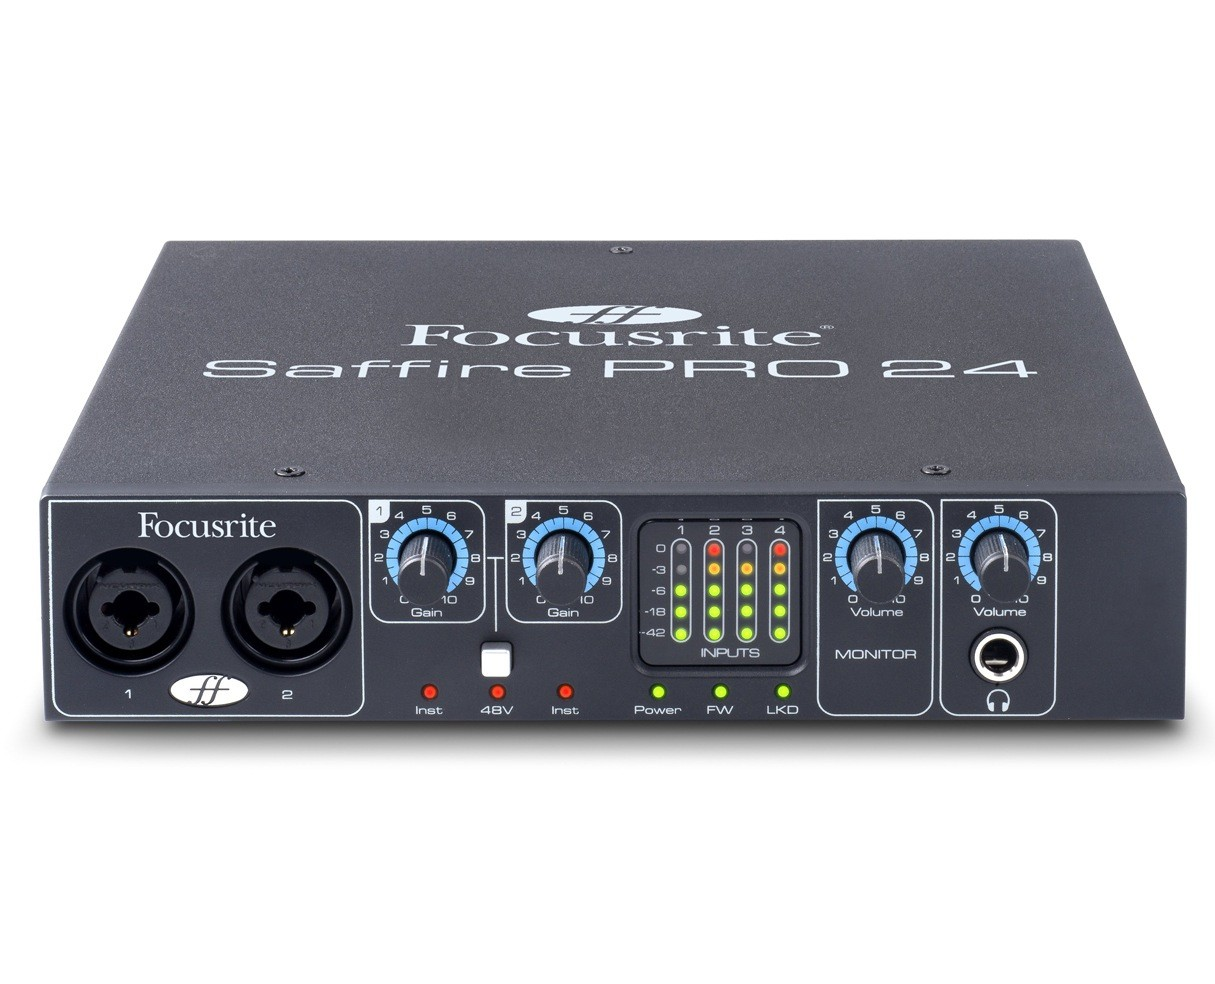 FOCUSRITE SAFFIRE 24 DRIVERS DOWNLOAD FREE